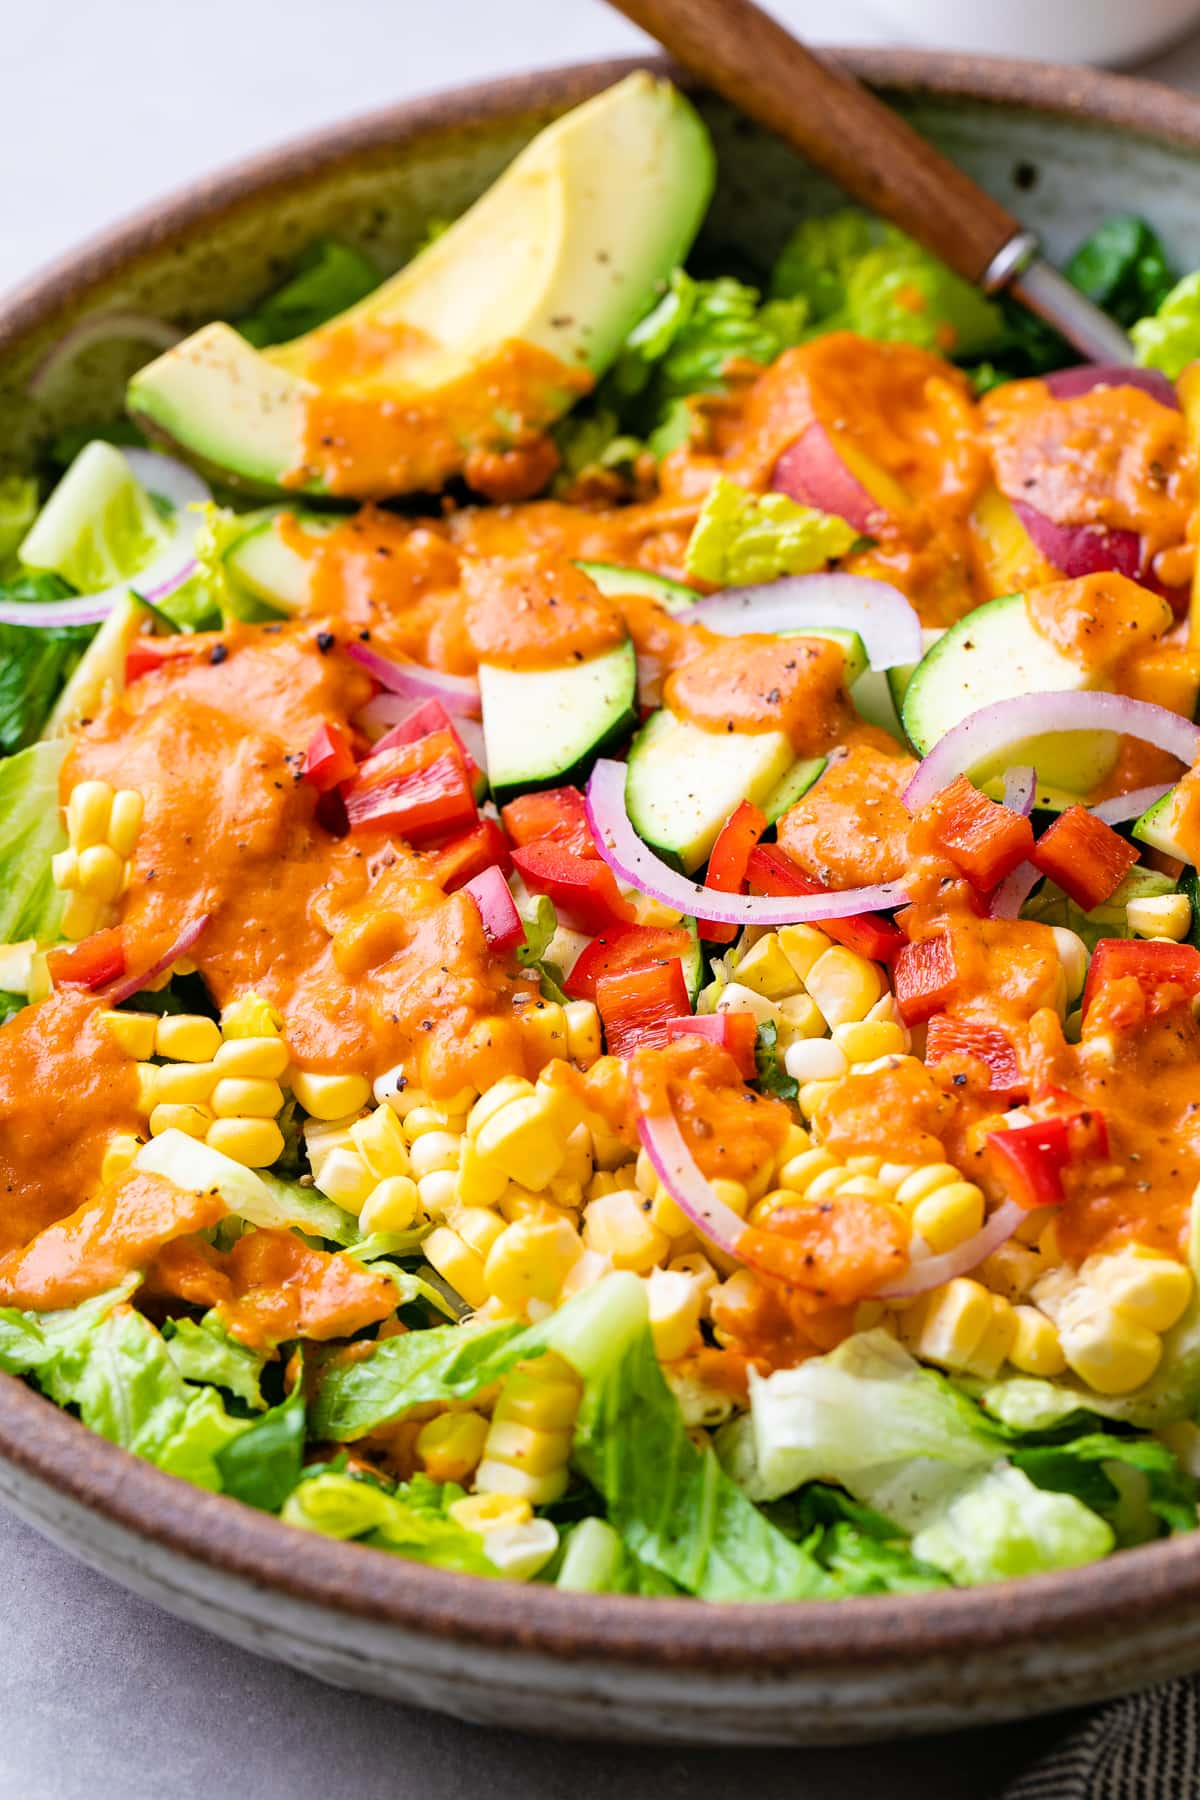 up close, side angle view of healthy farmer's market salad with sun-dried tomato vinaigrette in a bowl.